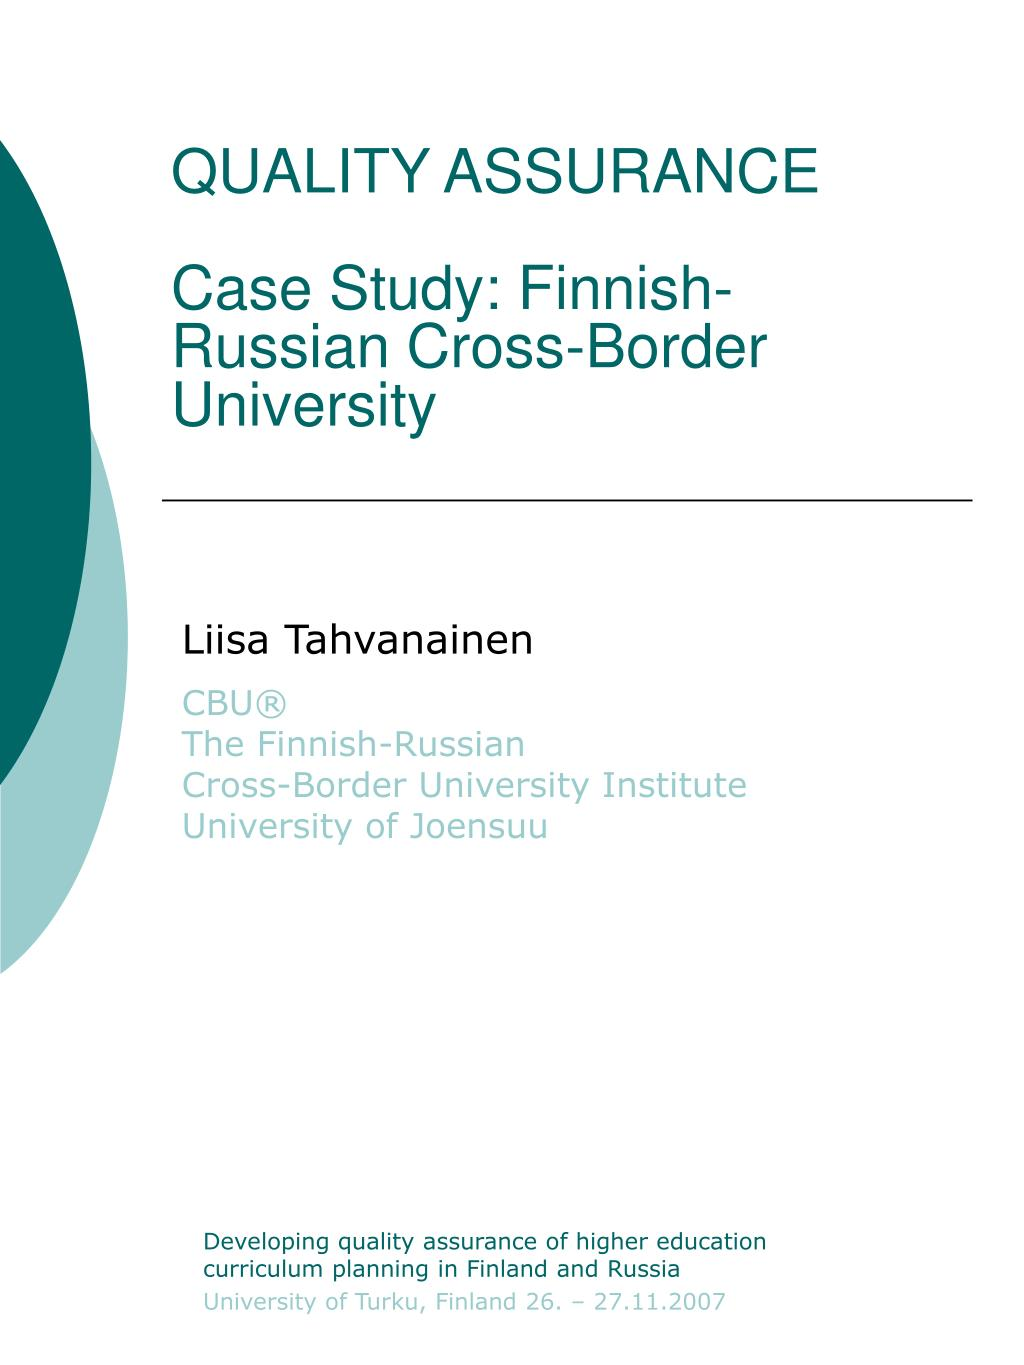 quality assurance case study finnish russian cross border university l.